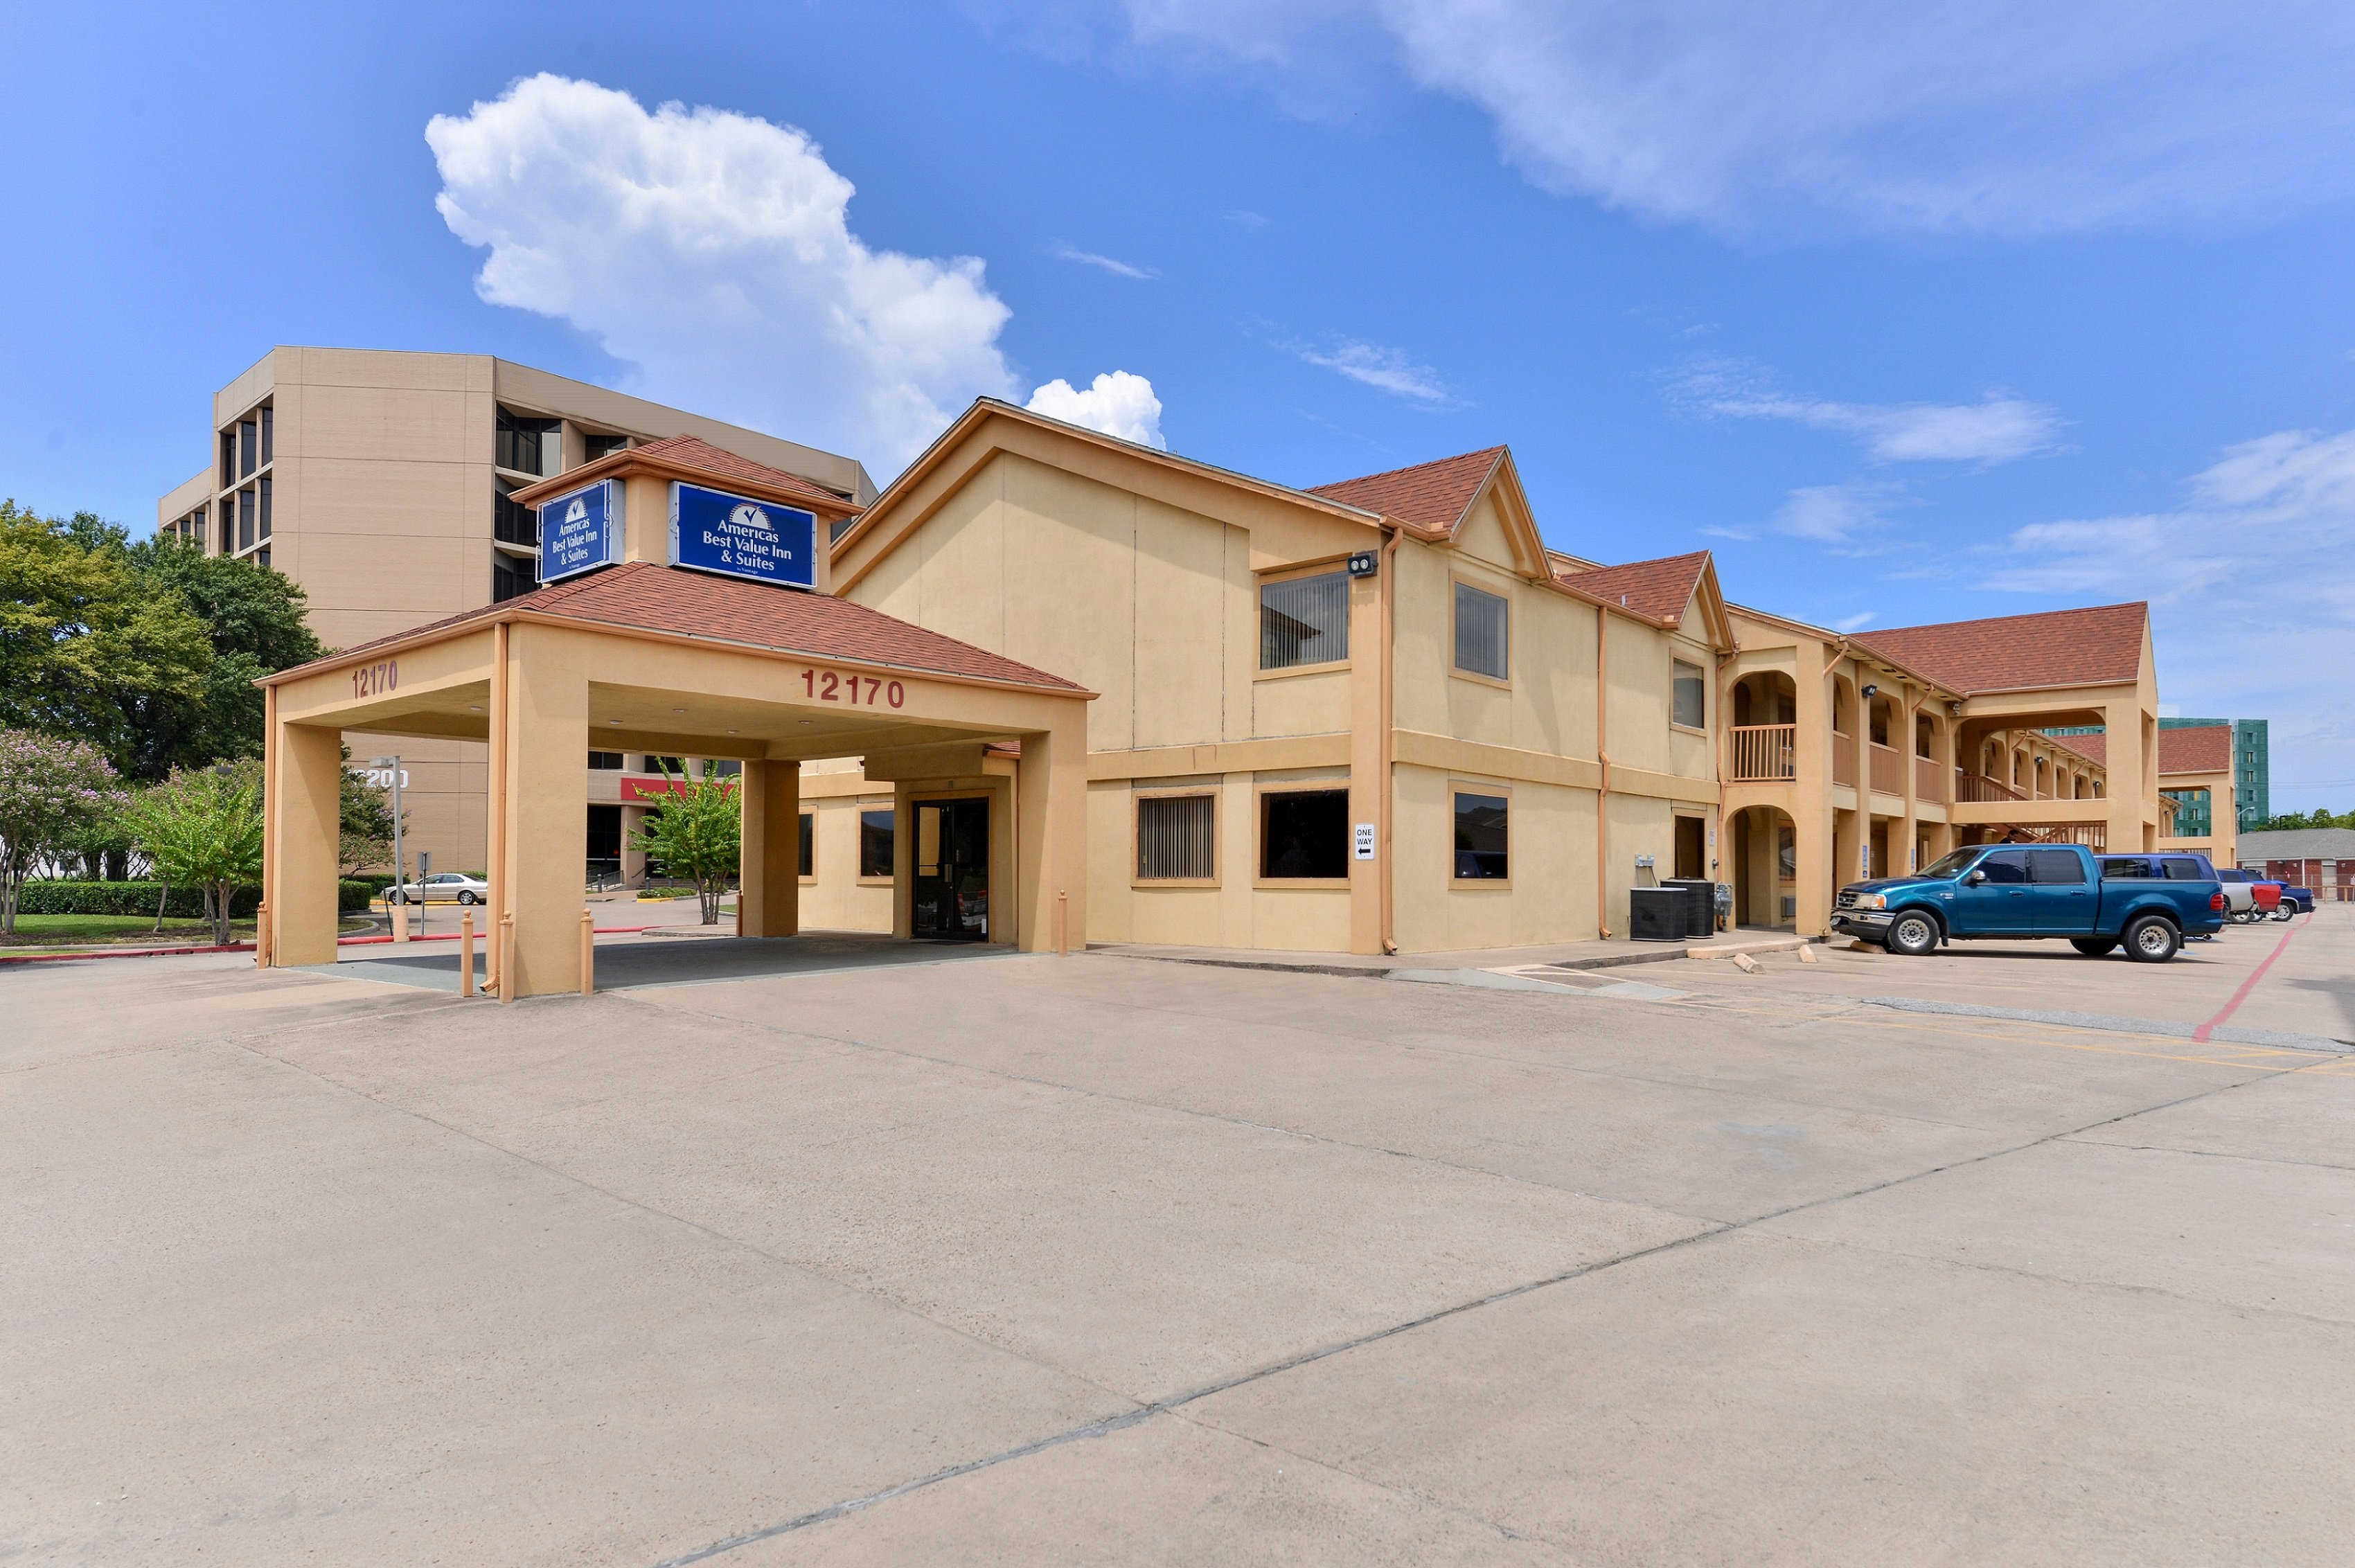 Americas Best Value Inn & Suites - Houston / Brookhollow Northwest